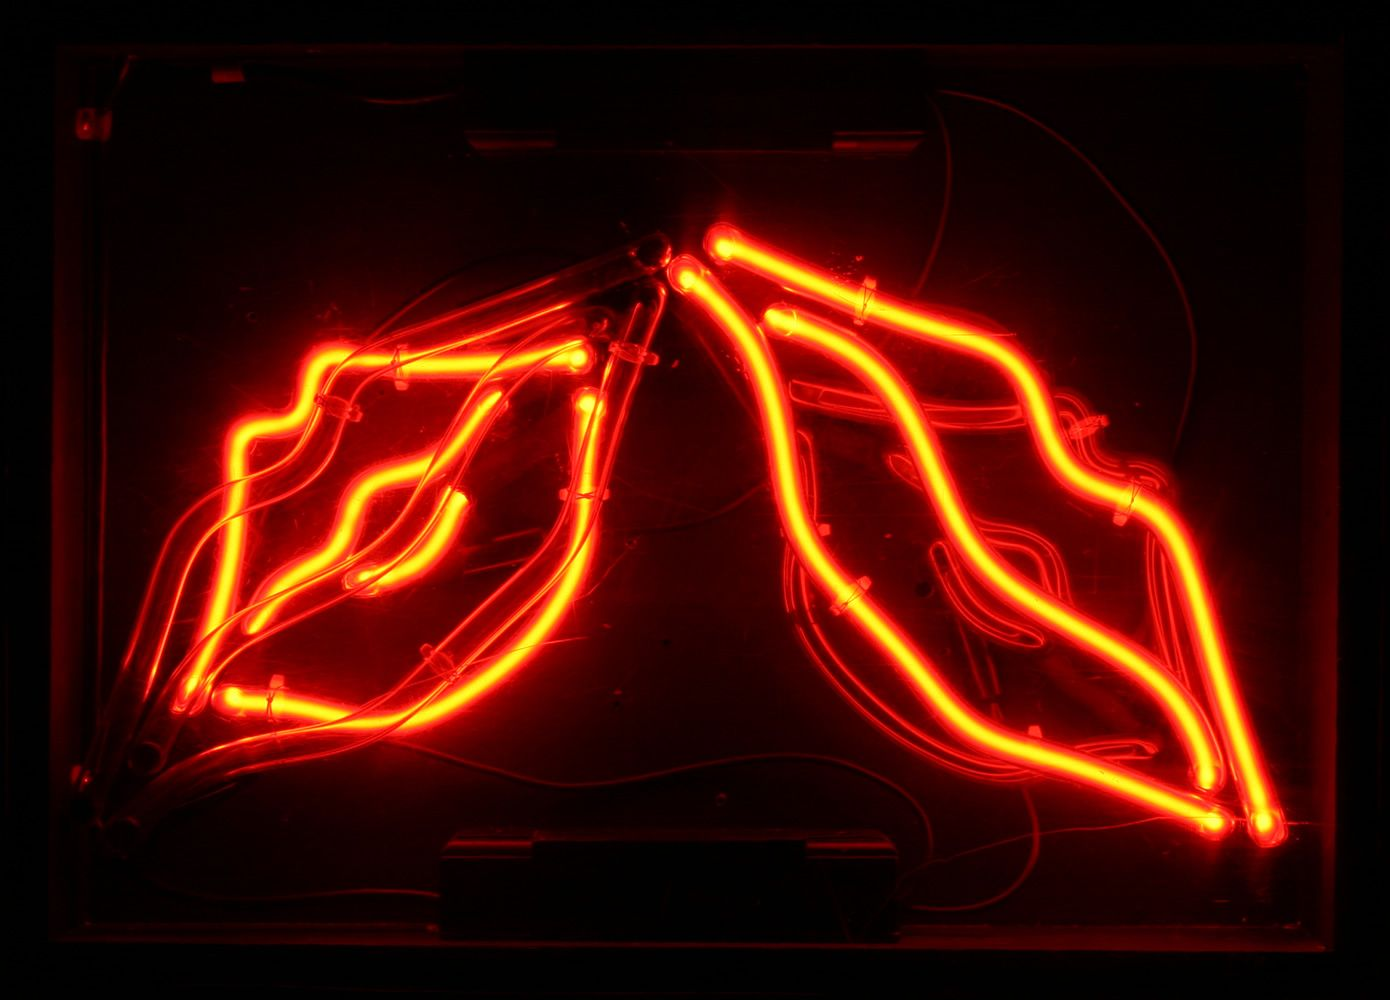 Red Lipped Tumblr Neon Signs Neon Light Wallpaper Neon Wall Art